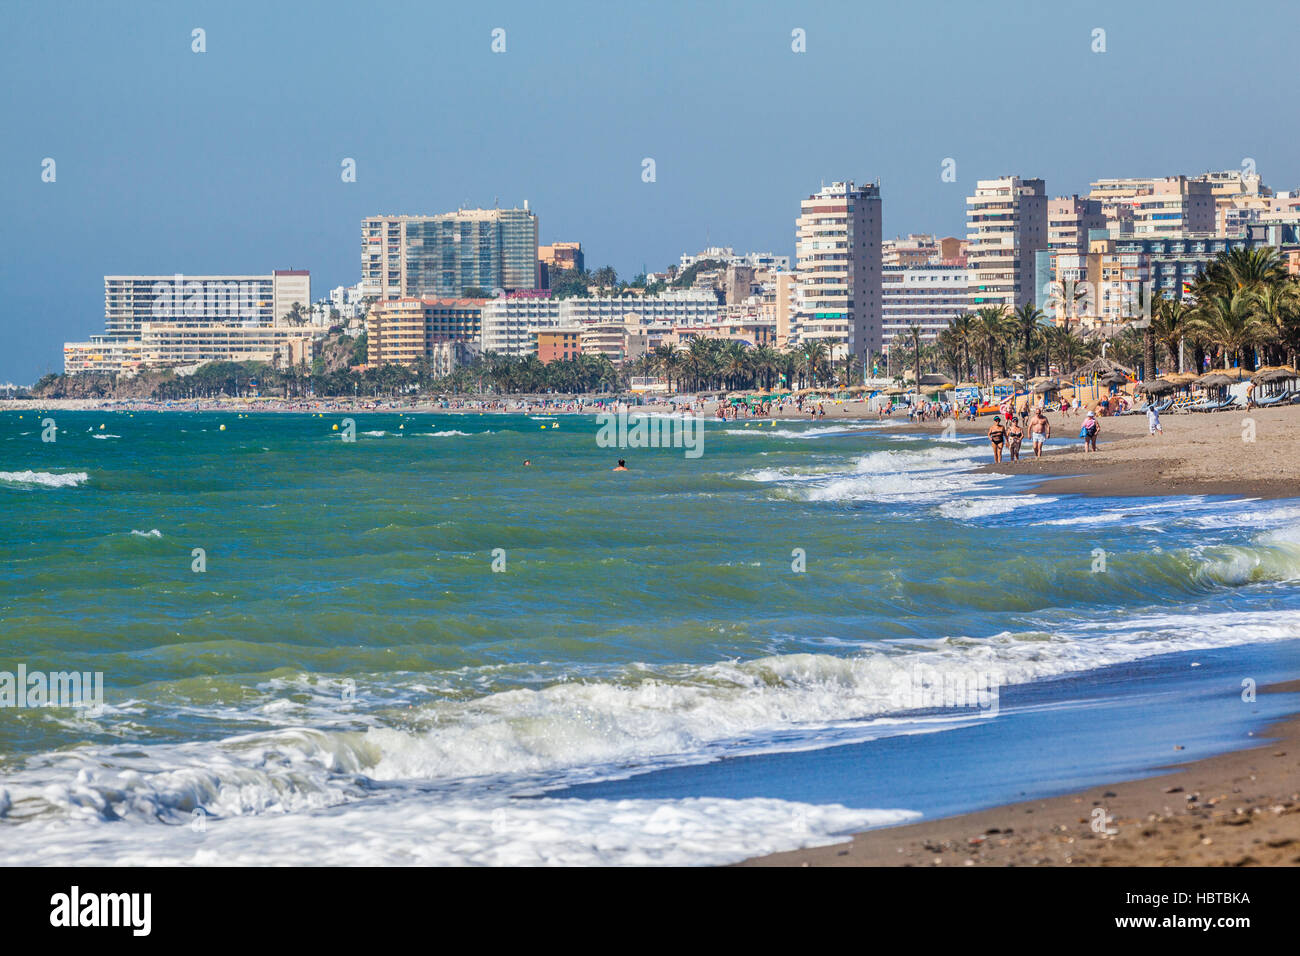 Spain, Andalusia, Province of Malaga, Costa del Sol, view of the hotel-highrise skyline of the Mediterranean resort - Stock Image